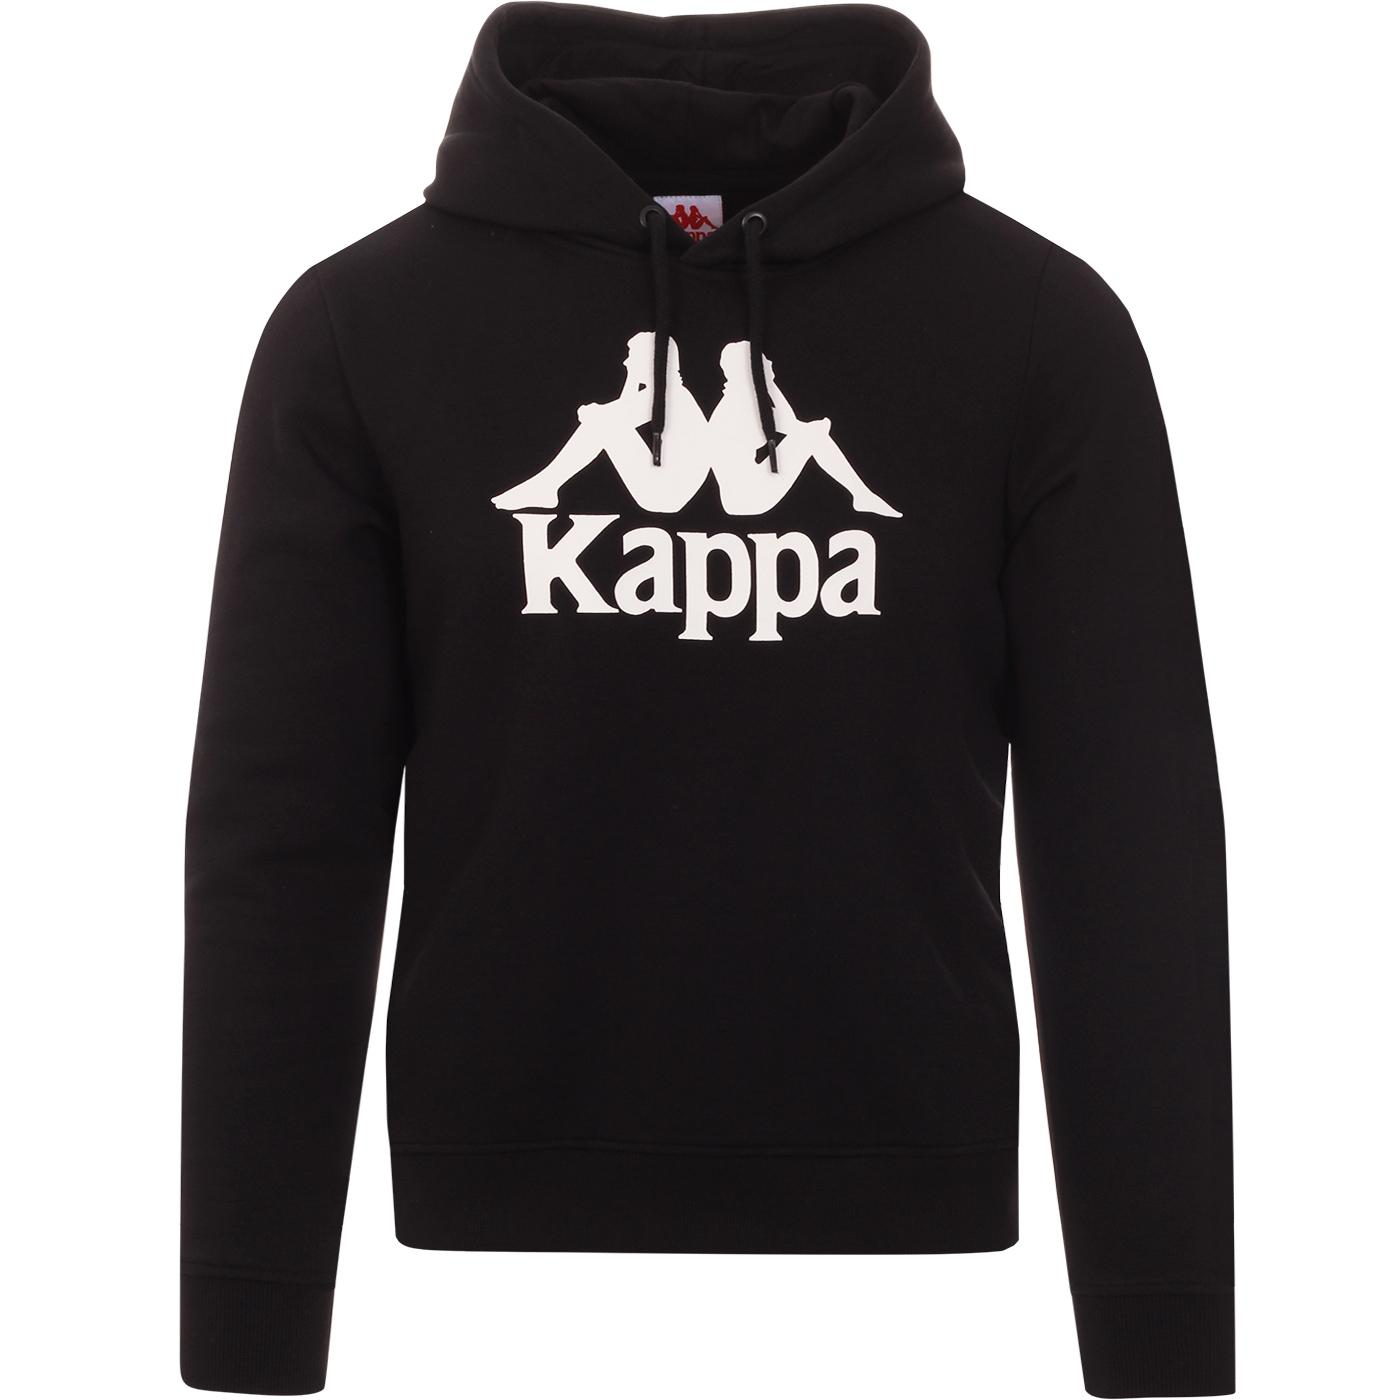 Esmio KAPPA Men's Eighties Retro Logo Hoodie BW